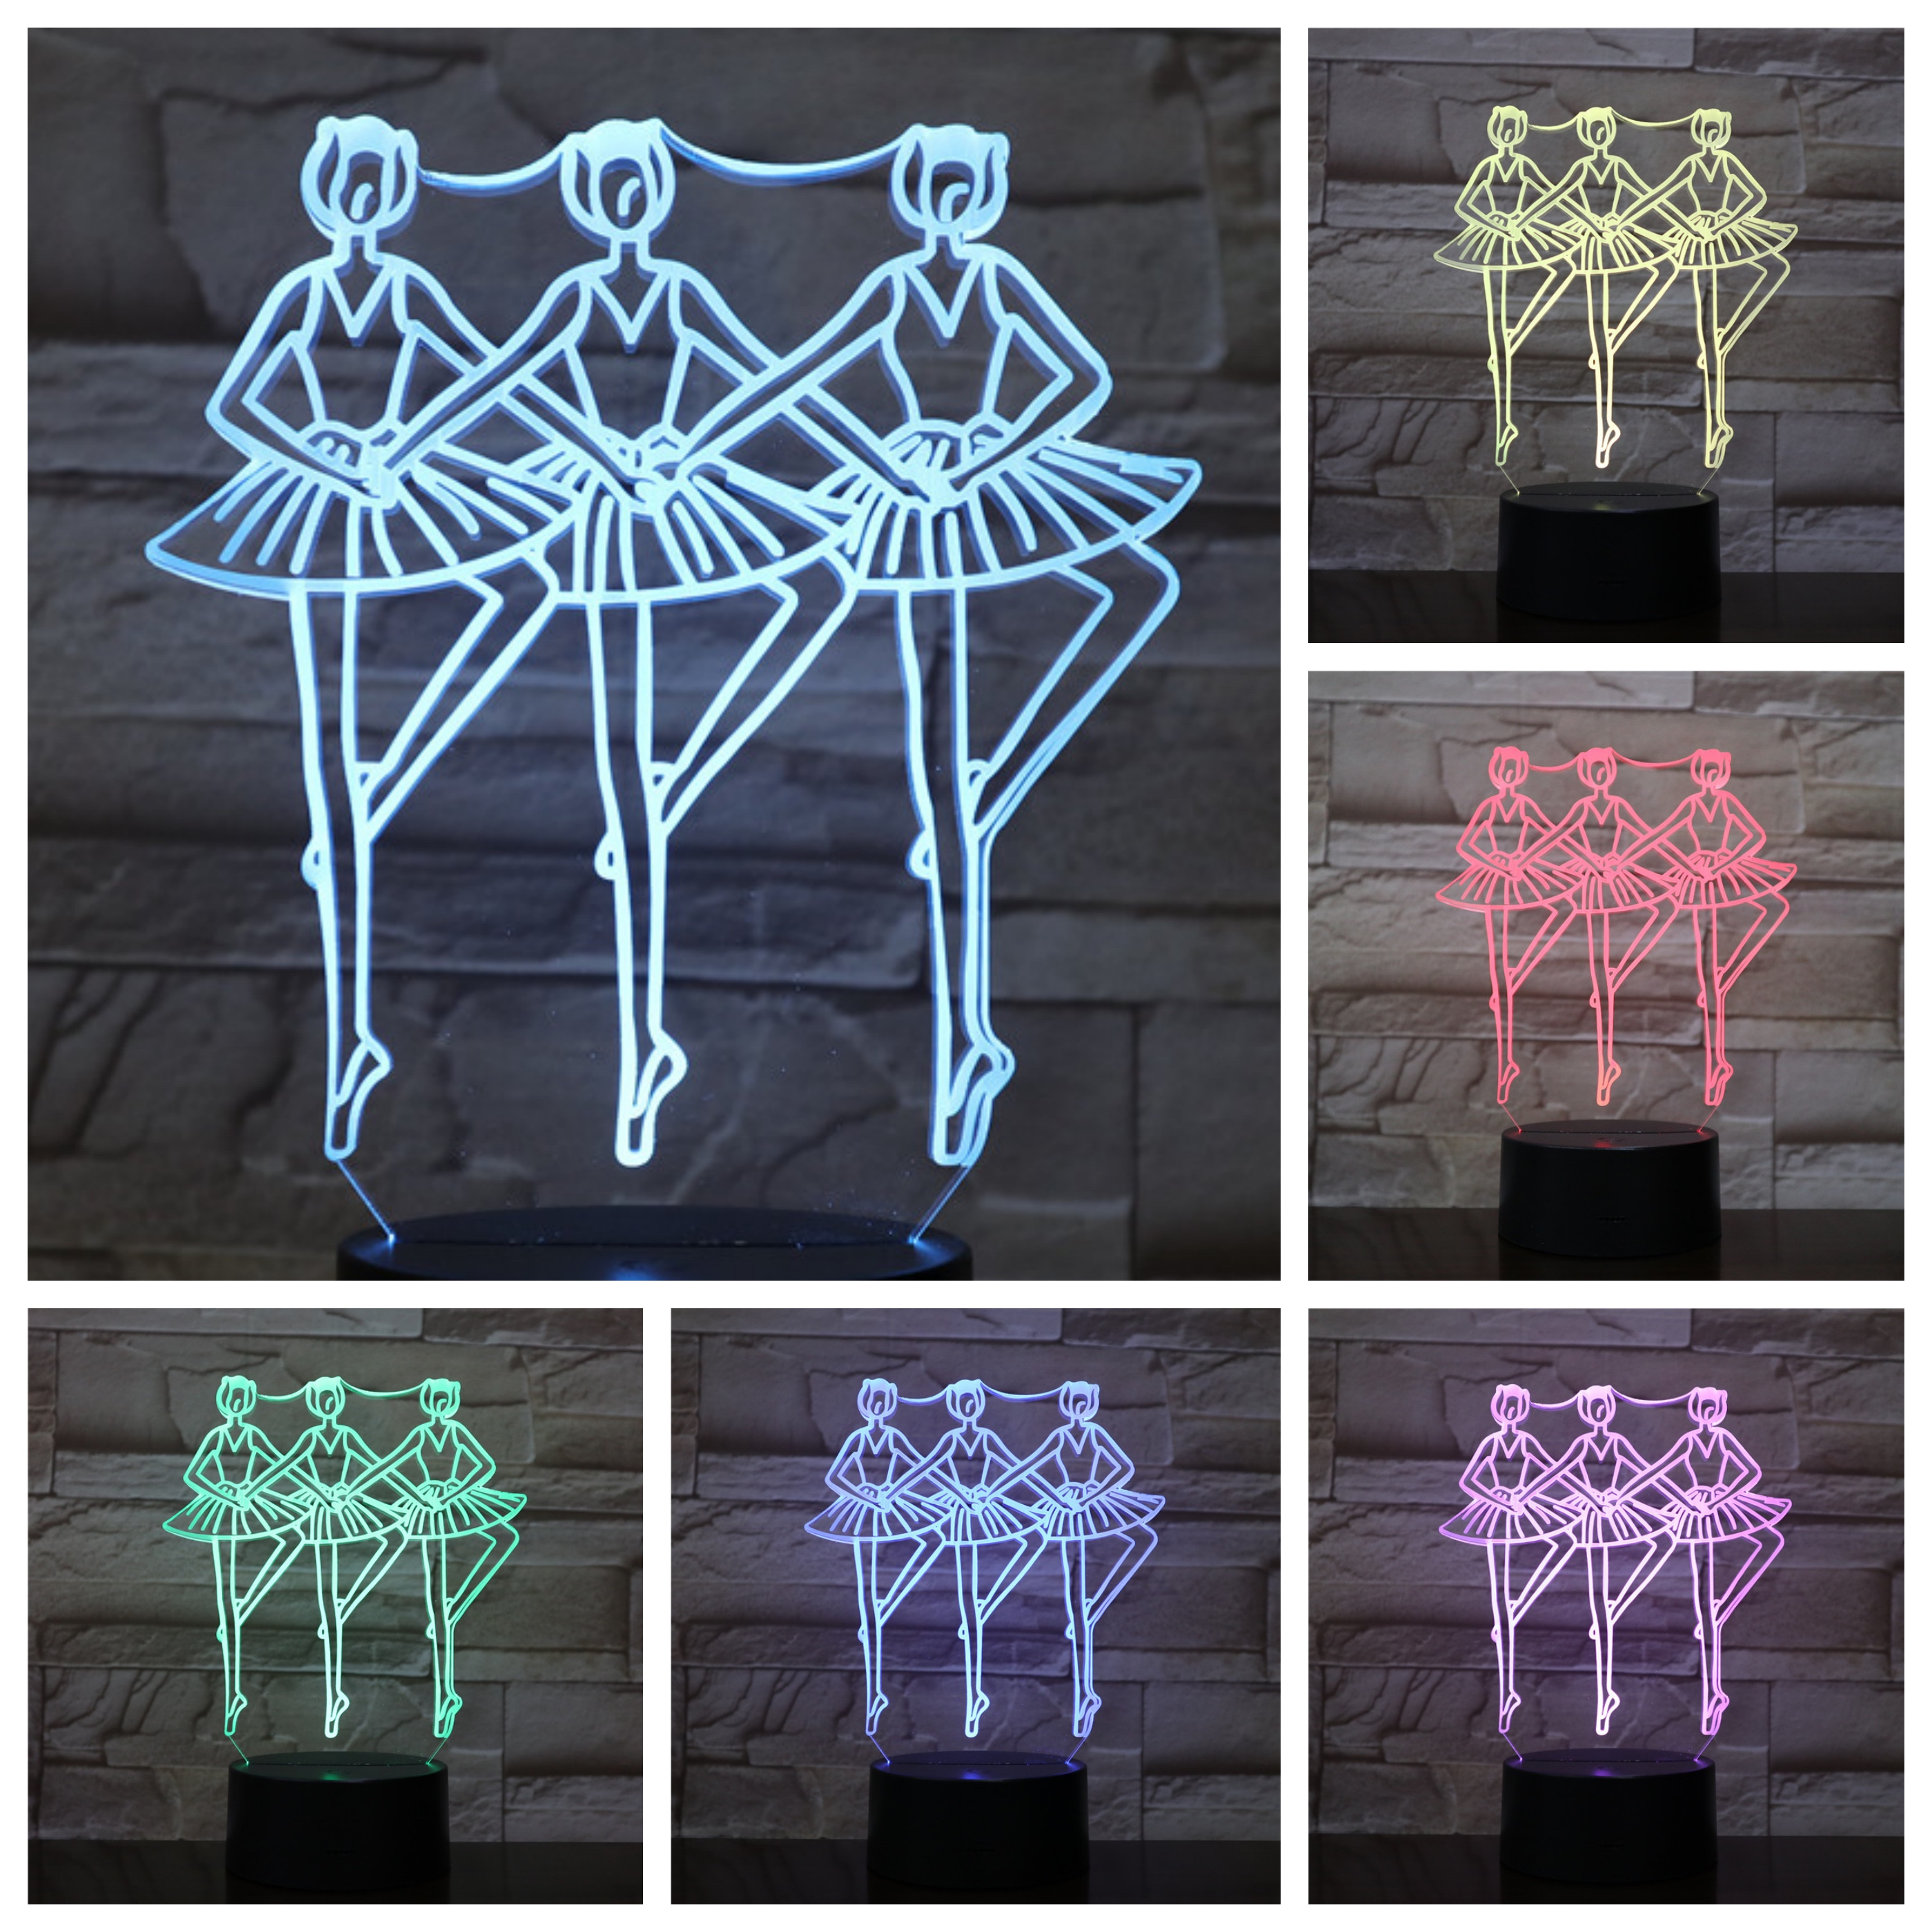 Ballet Figure 3d Led Lamp Bedside Multicolor Rgb Decorative Light Girl Childrens Kids Gift Balletto Usb Night Table